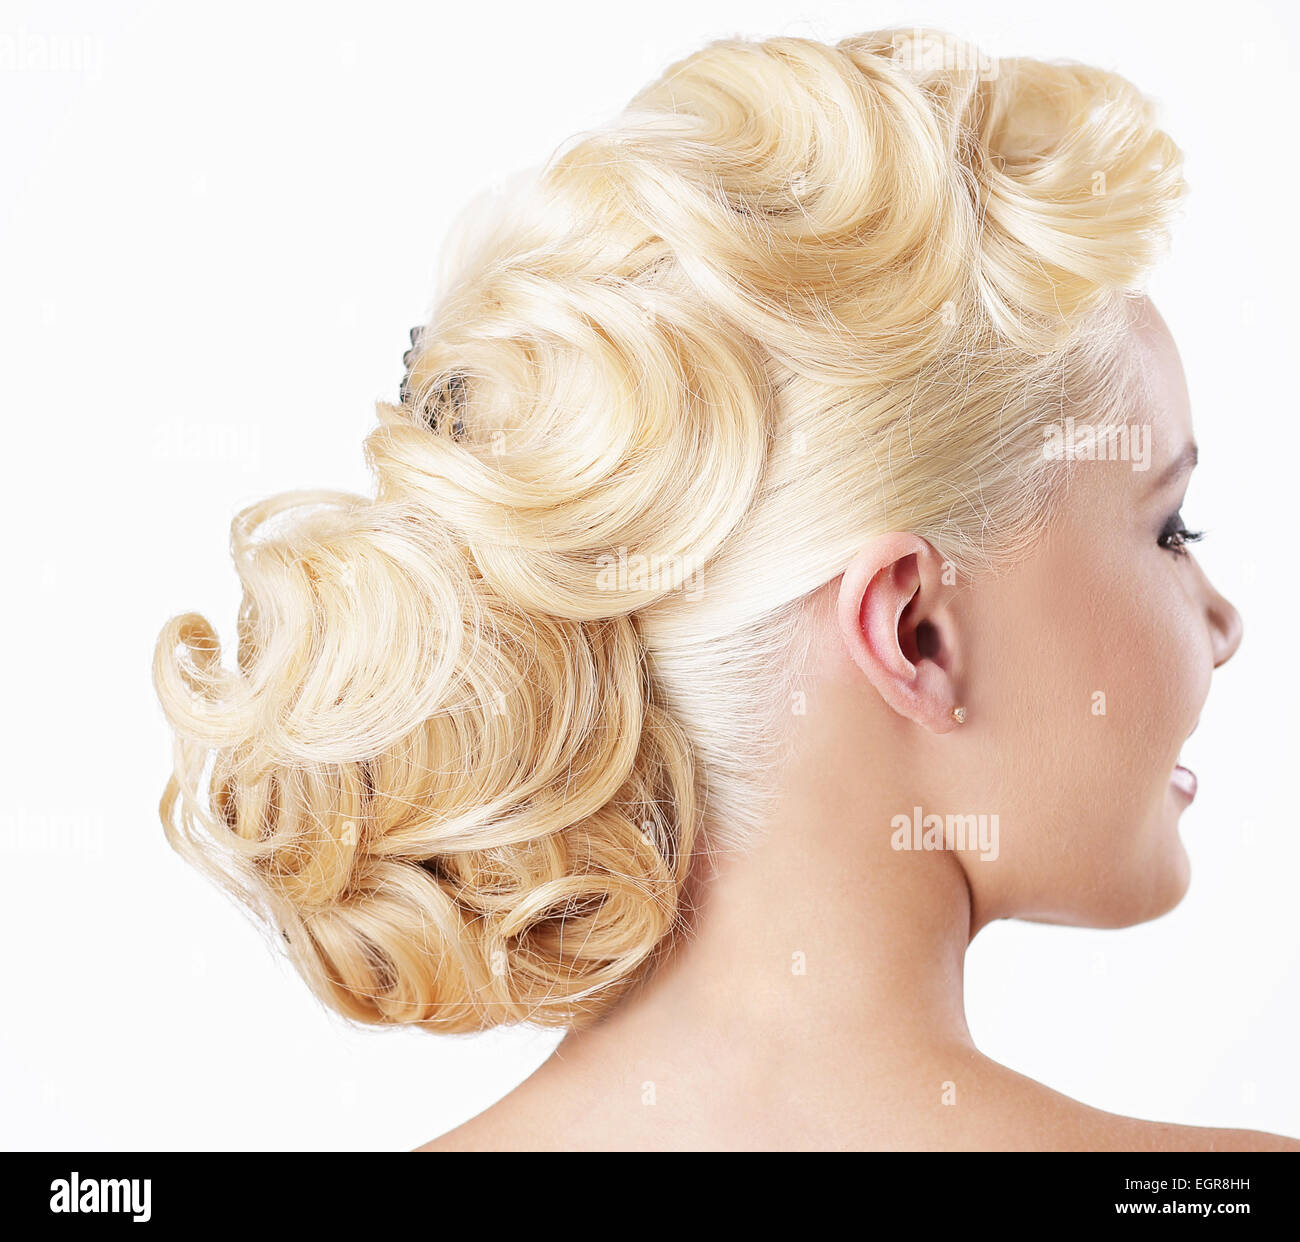 Coiffure Stock Photos Coiffure Stock Images Alamy